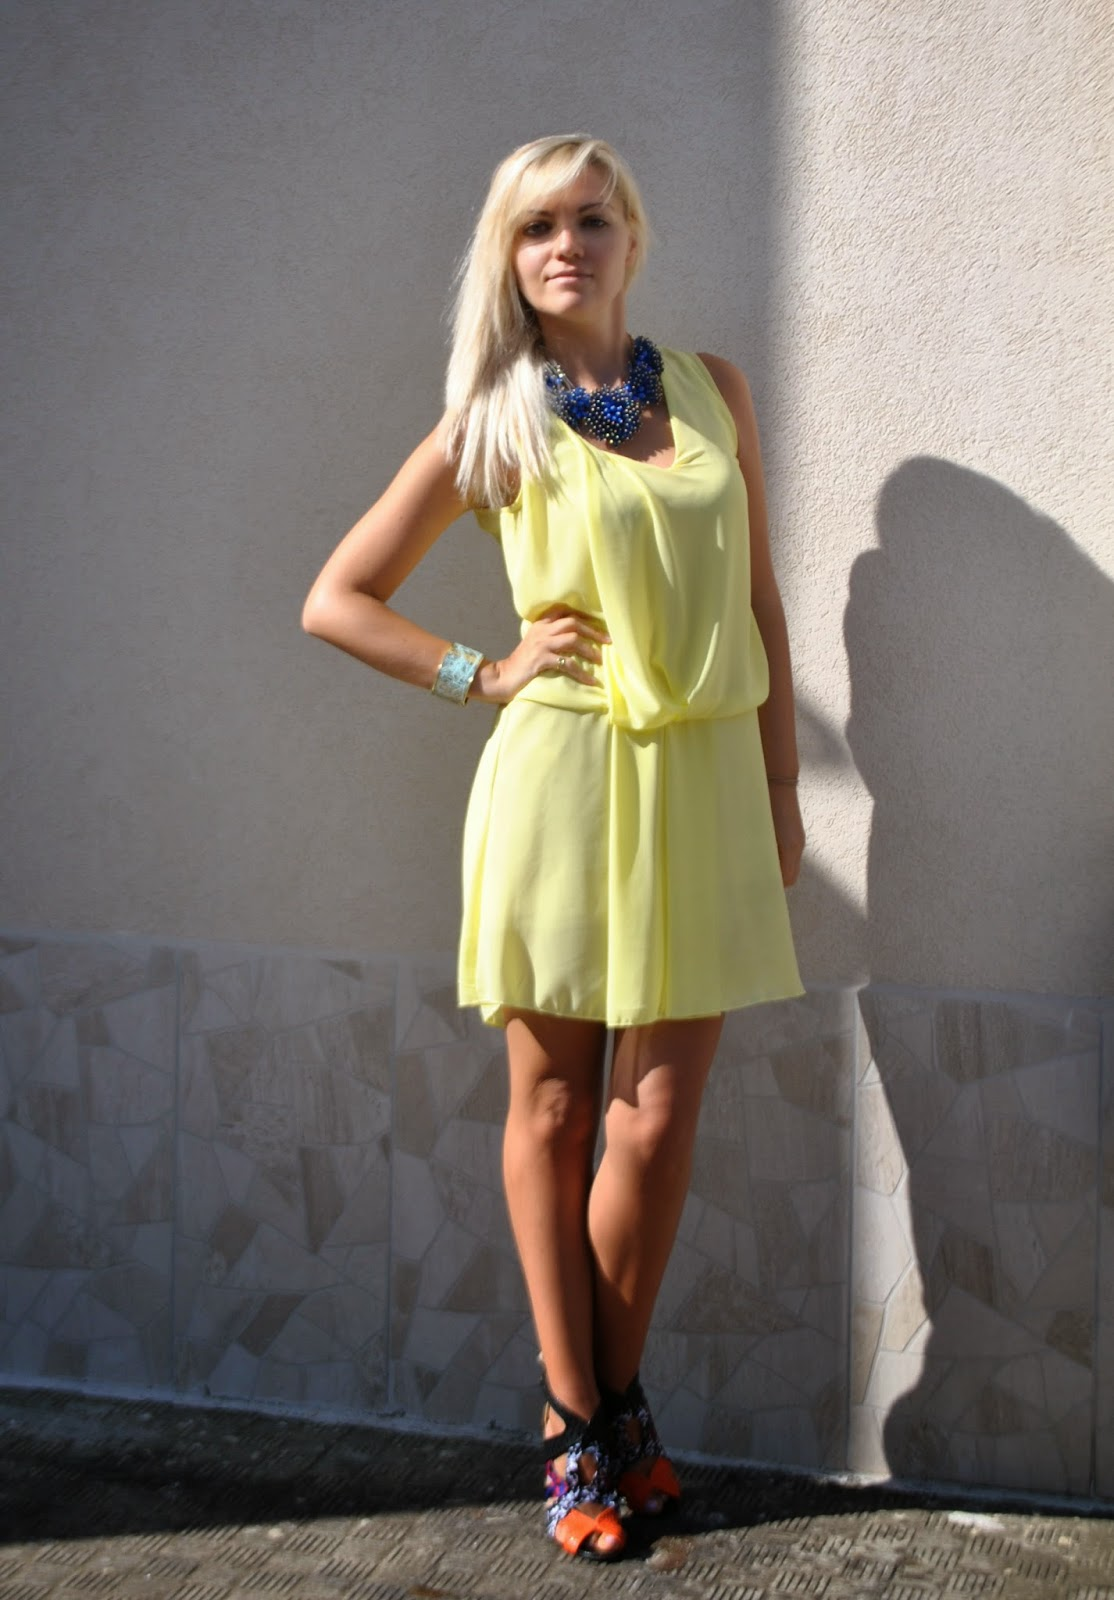 outfit abito giallo sandro ferrone collana blu majique abbinamento giallo e blu come abbinare il giallo outfit estate 2014 outfit estivi outfit agosto 2014 outfit mariafelicia magno fashion blogger di colorblock by felym outfit fashion blogger italiane fashion blogger bionde fblogger lookbook street style moda colorblock by felym mariafelicia magno sandali pimkie milano collana blu come abbinare la collana blu maxi collana how to wear yellow dress how to wear maxi necklace majique necklace